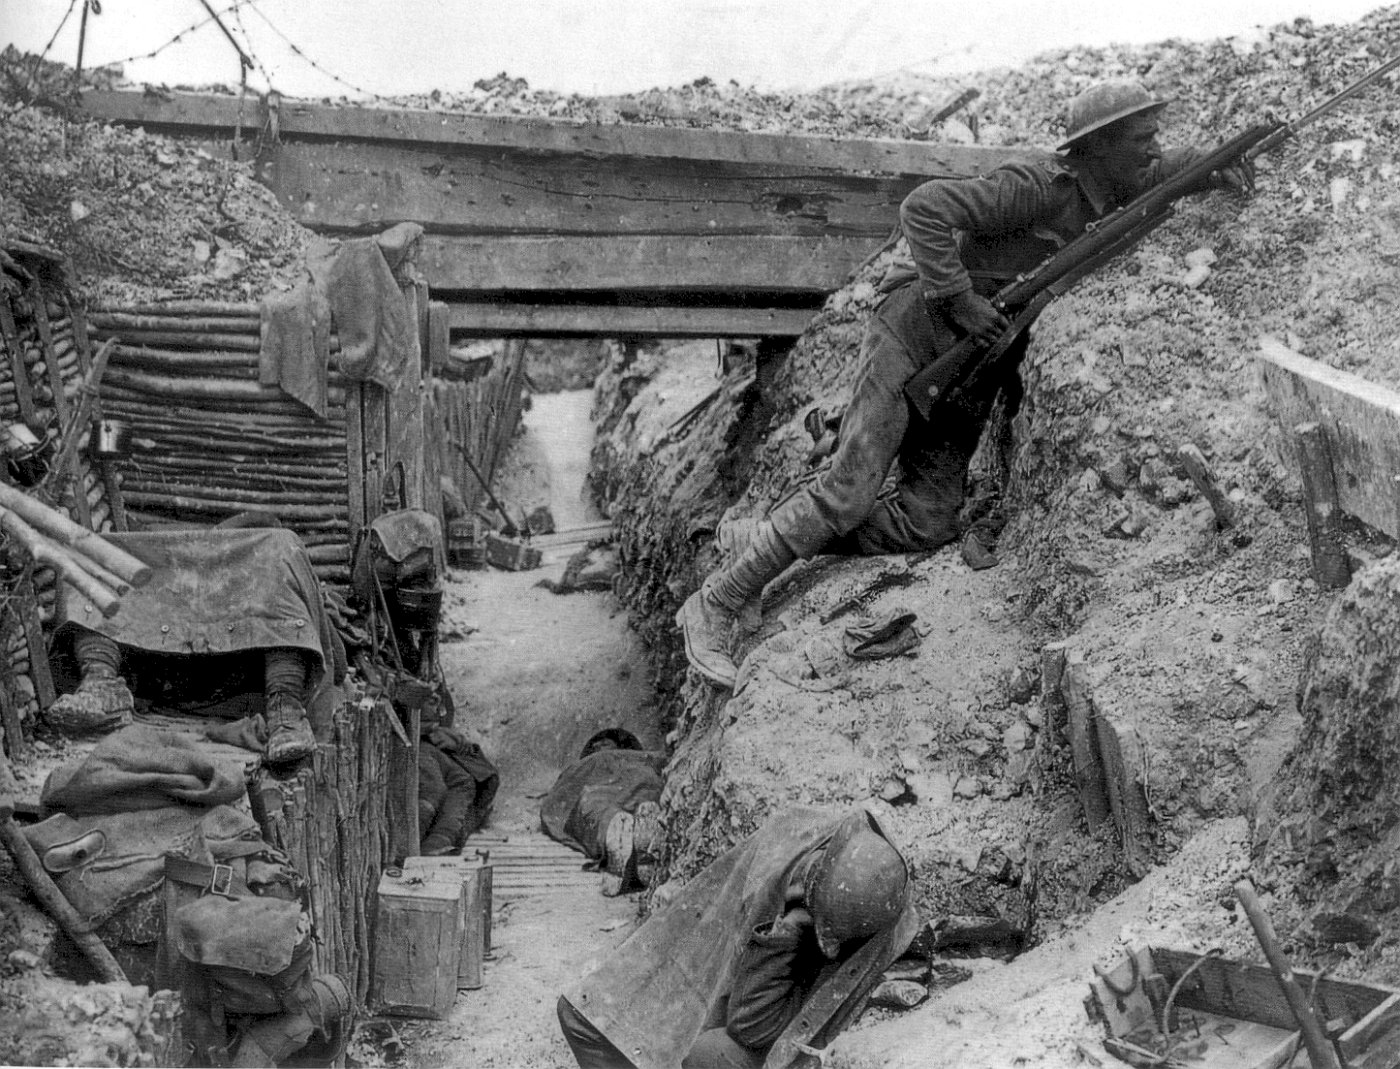 This was to stop soldiers being able to charge at the trench.